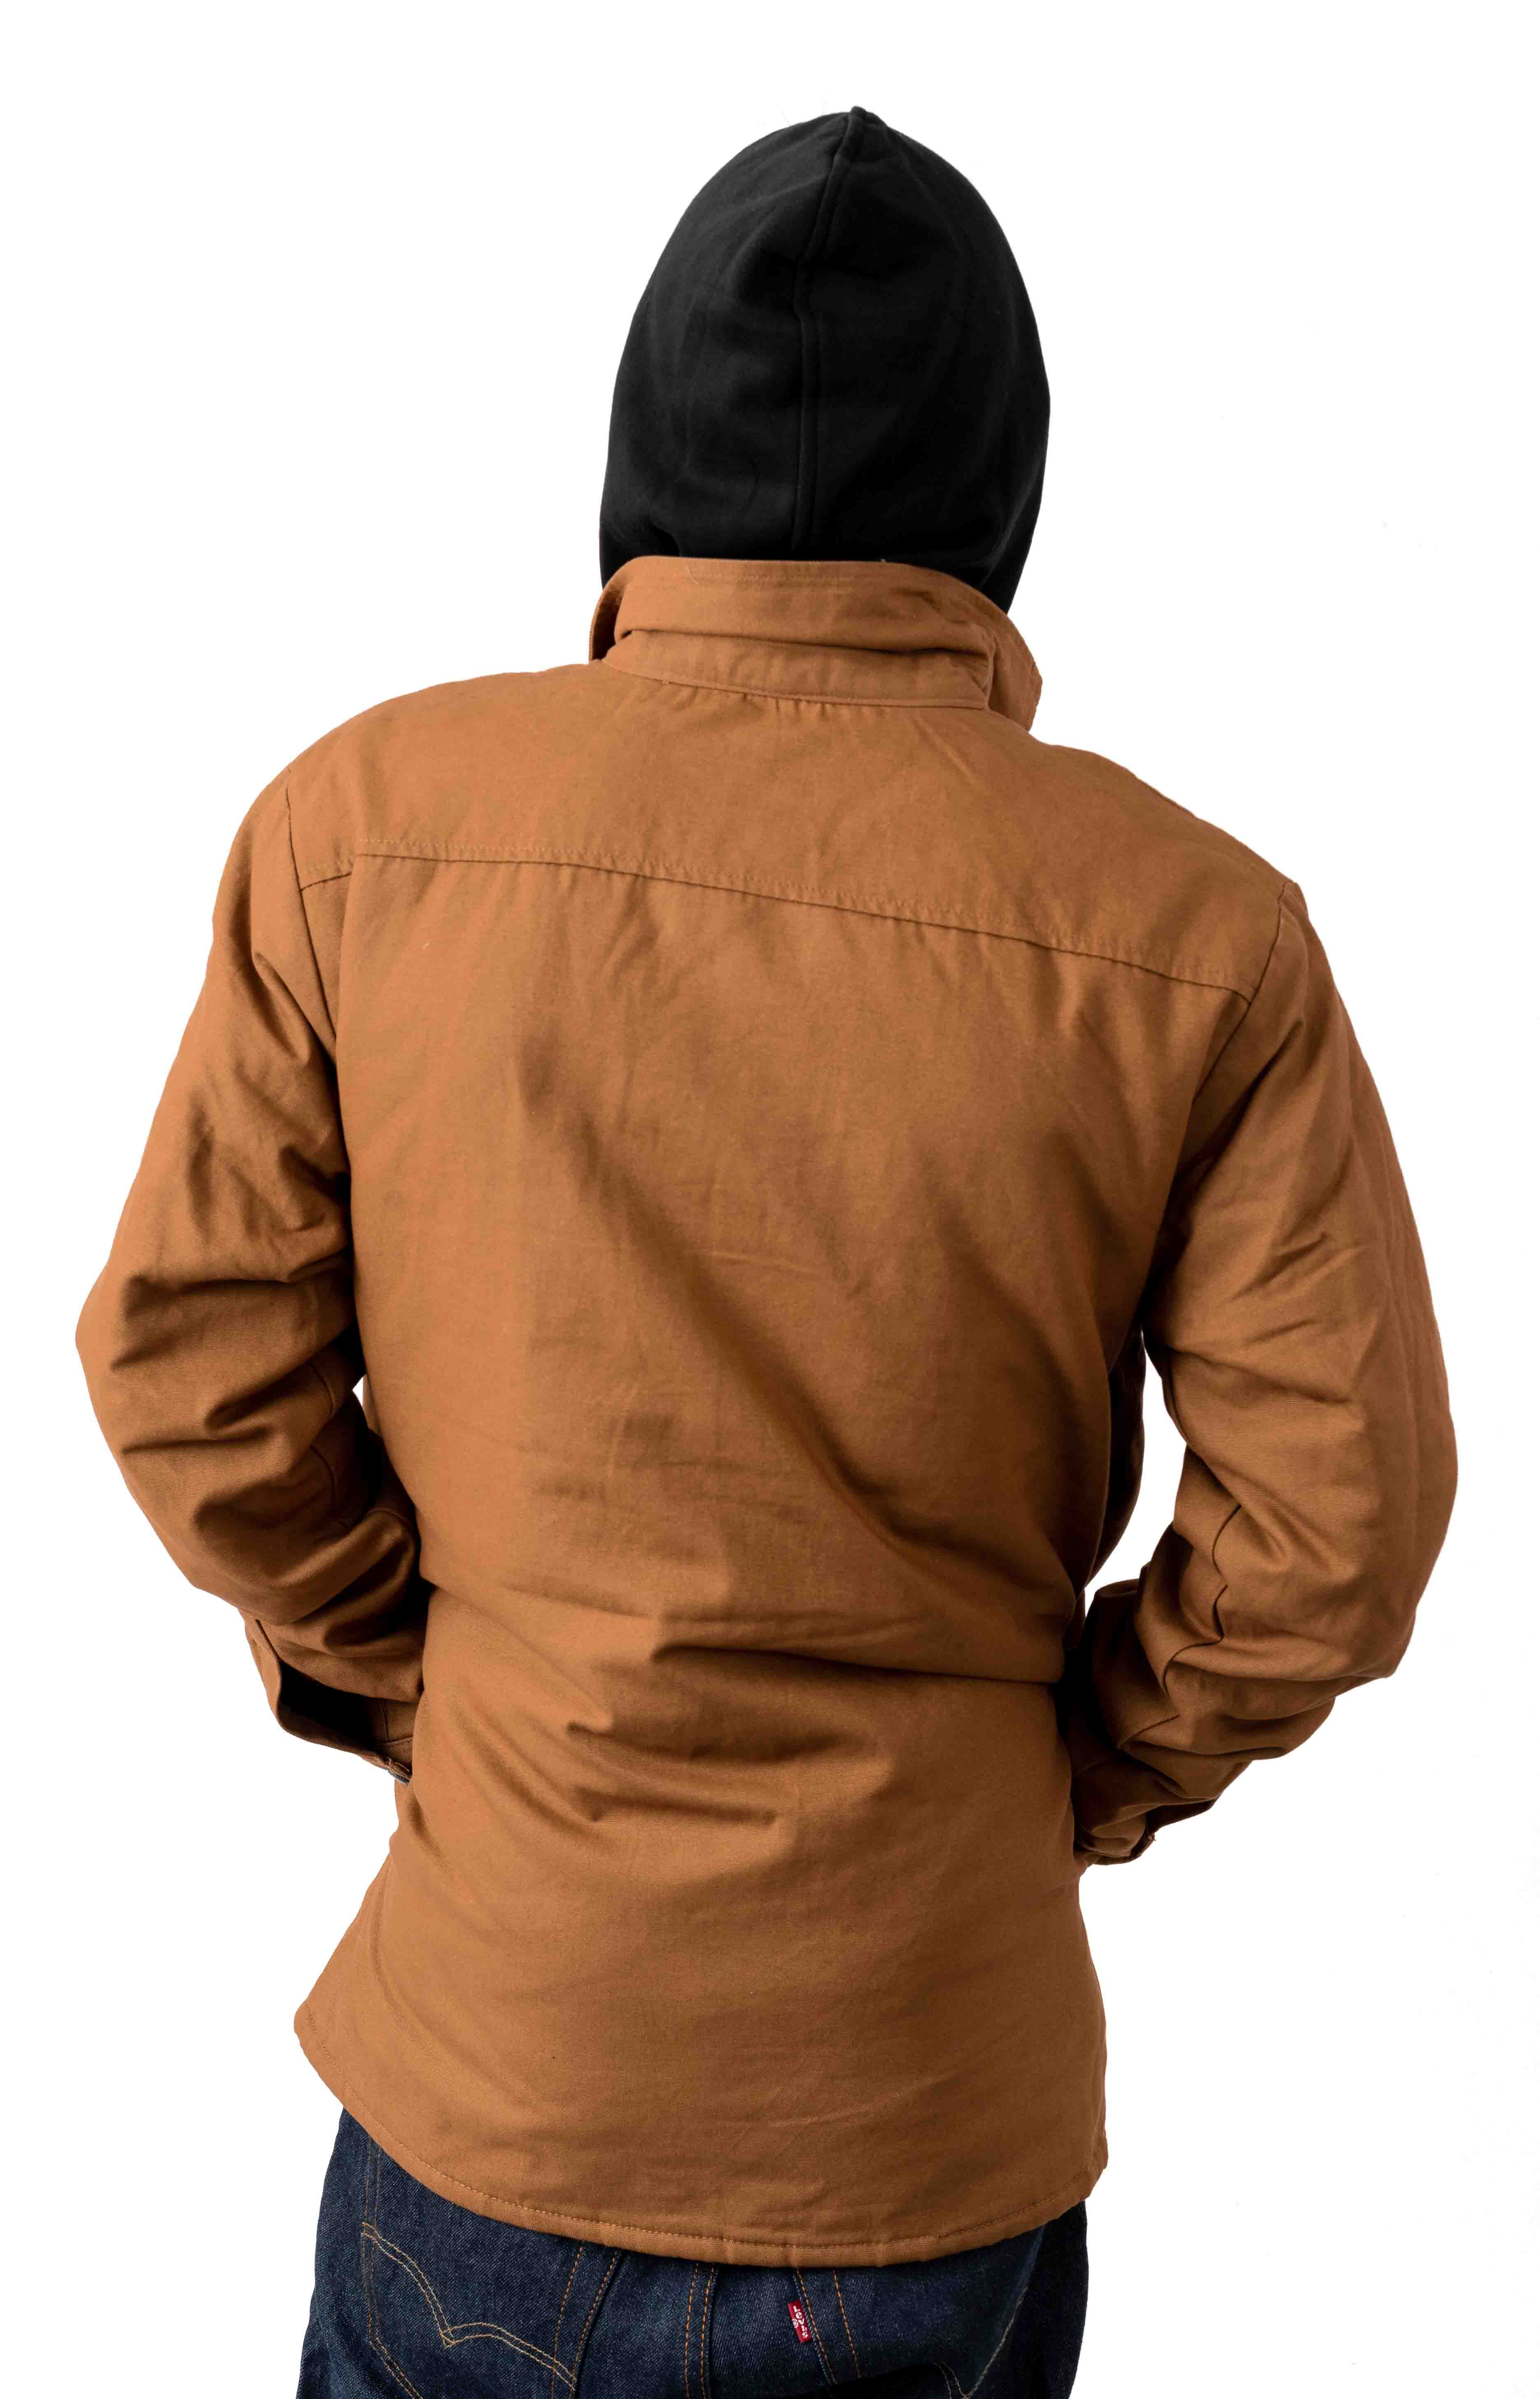 (TJ500BD) Duck Shirt Jacket w/ Fleece Hood - Brown Duck 3